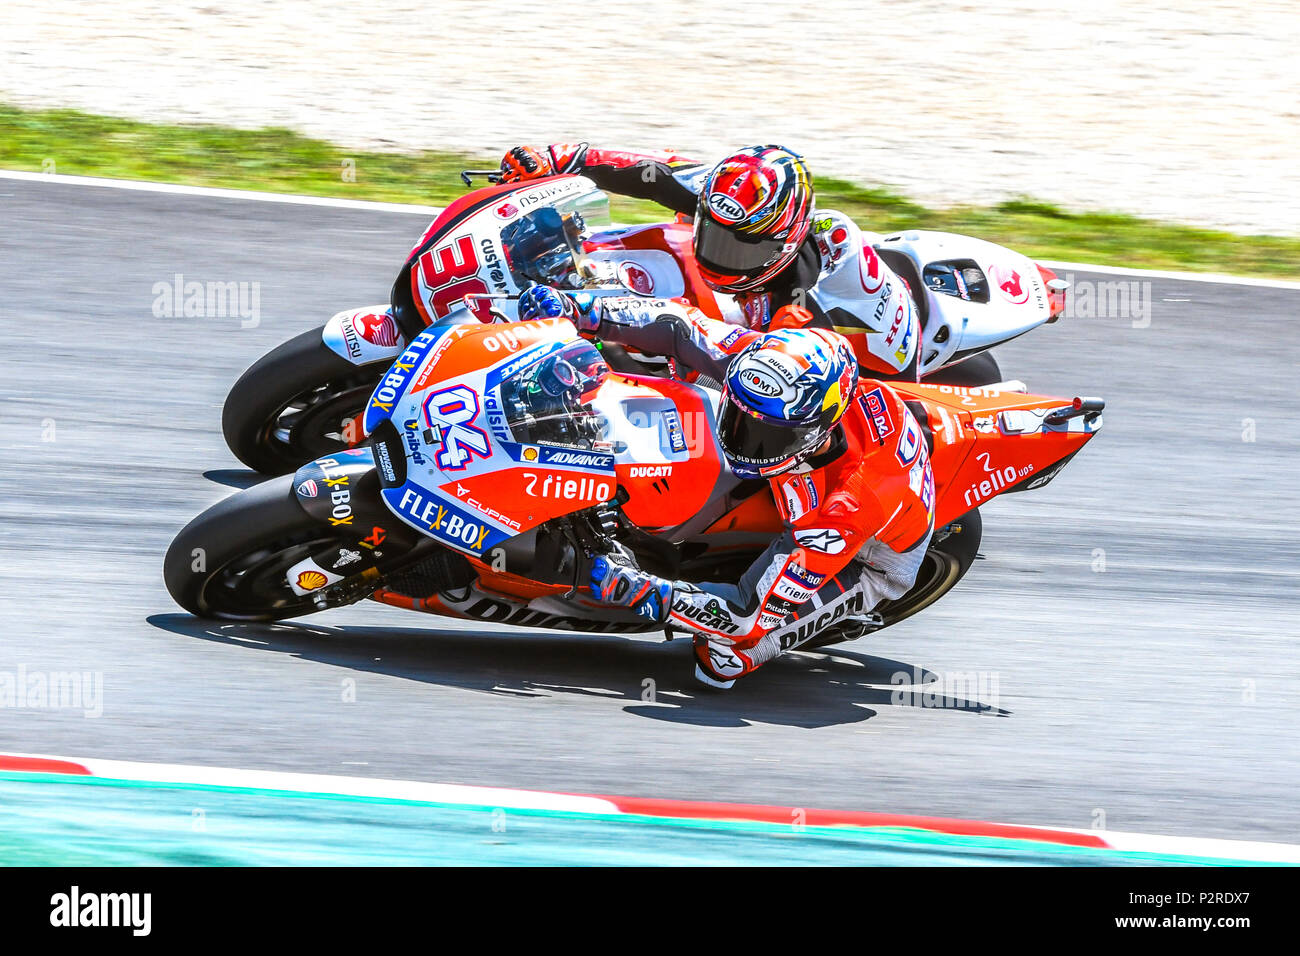 montmelo-spain-16th-jun-2018-andrea-dovi